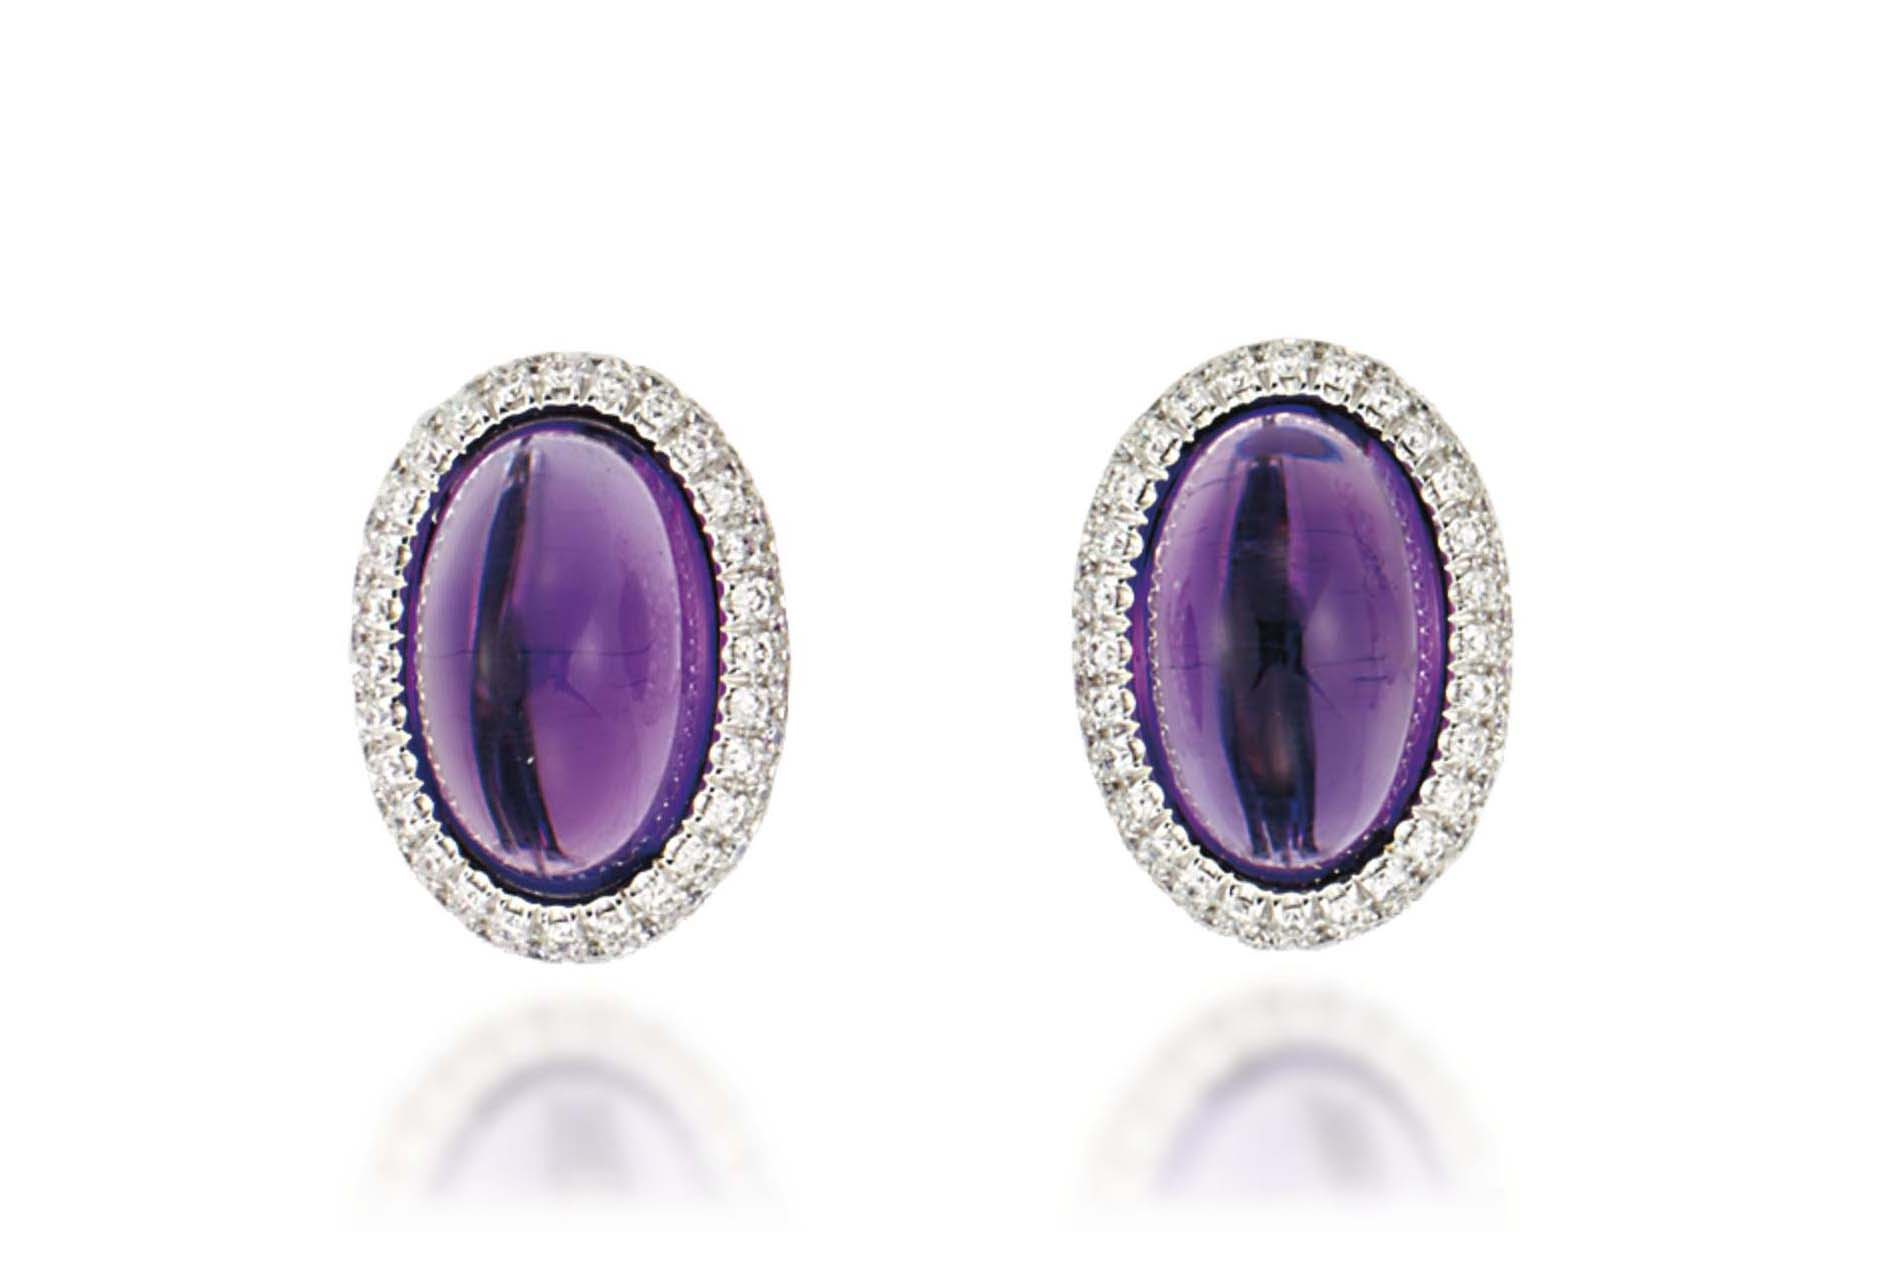 A PAIR OF AMETHYST AND DIAMOND EAR CLIPS, BY MARGHERITA BURGENER